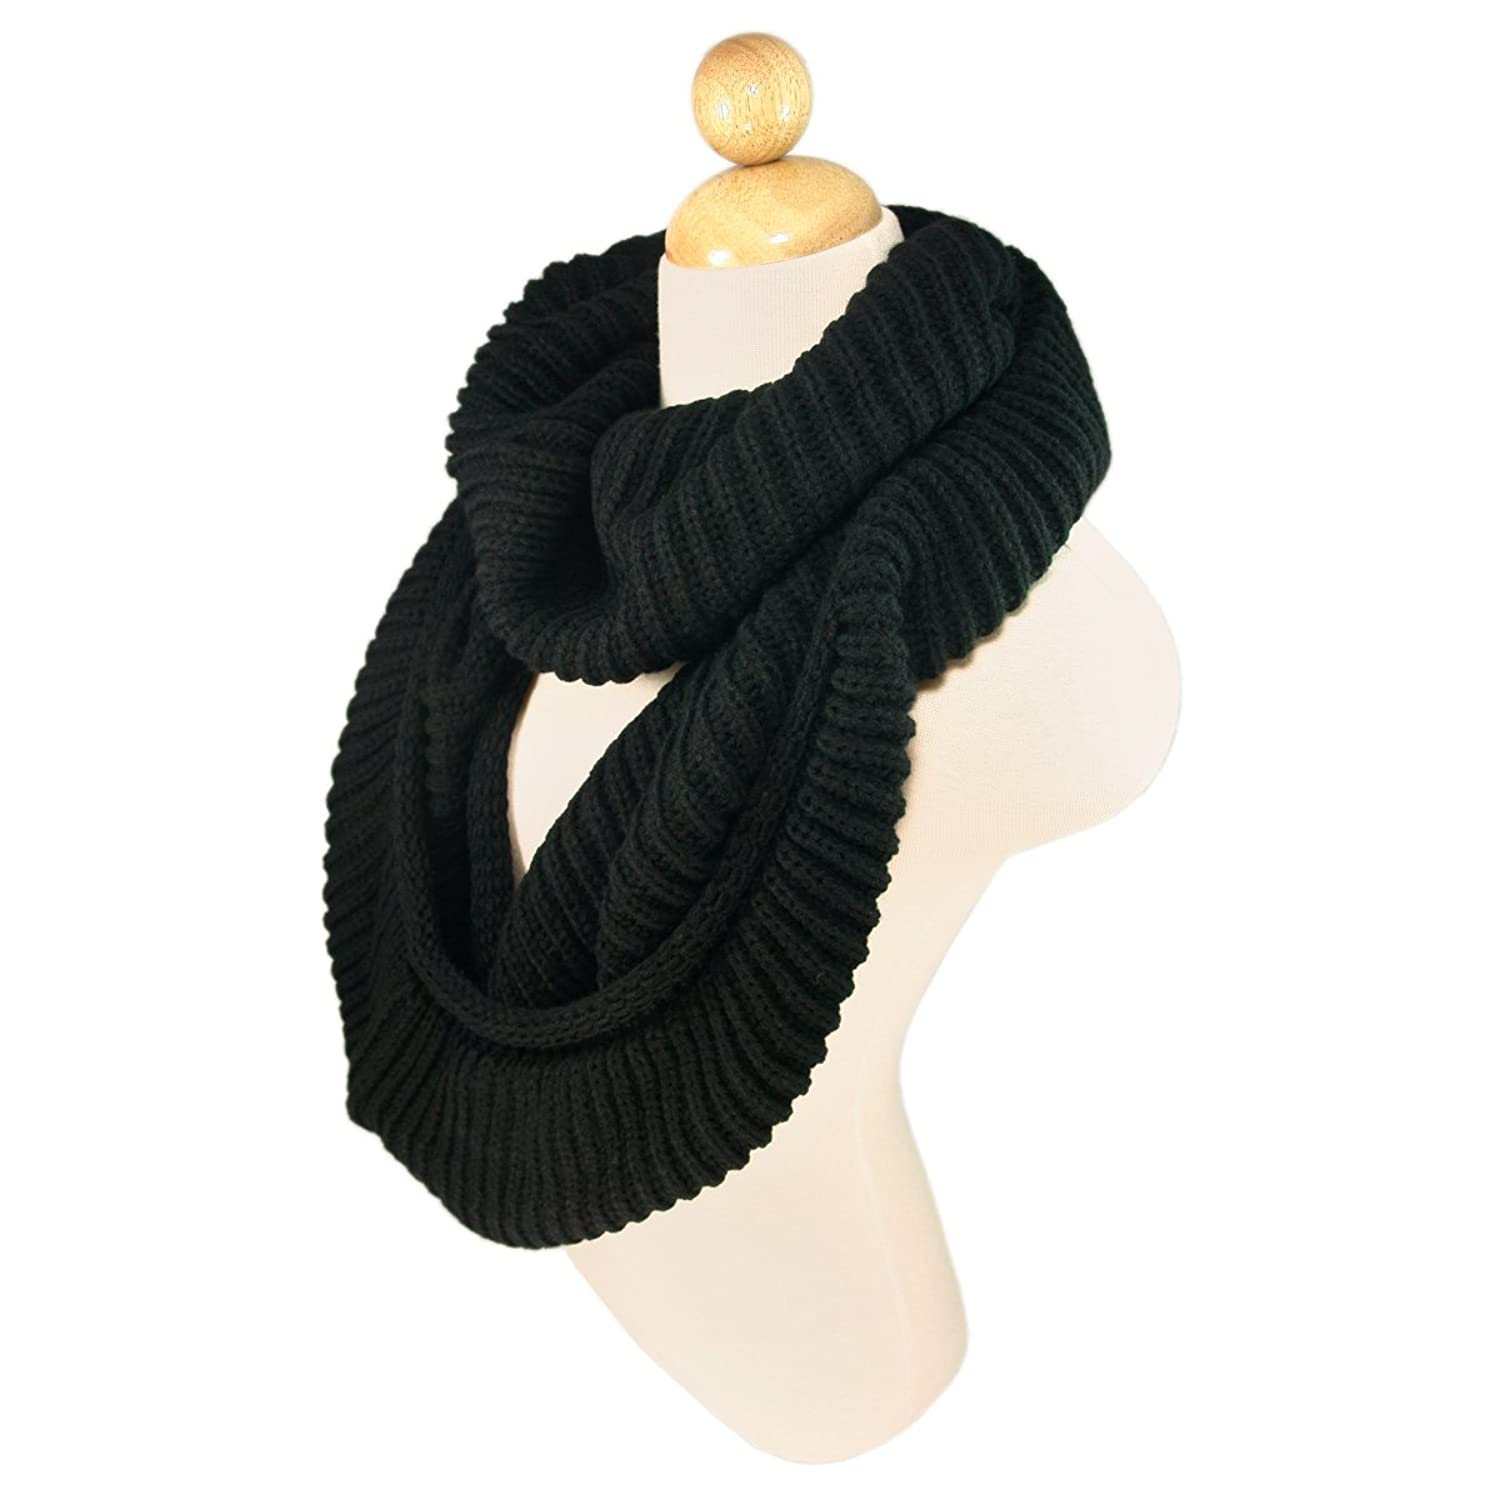 TrendsBlue Premium Winter Knit Warm Infinity Scarf, Black at ...